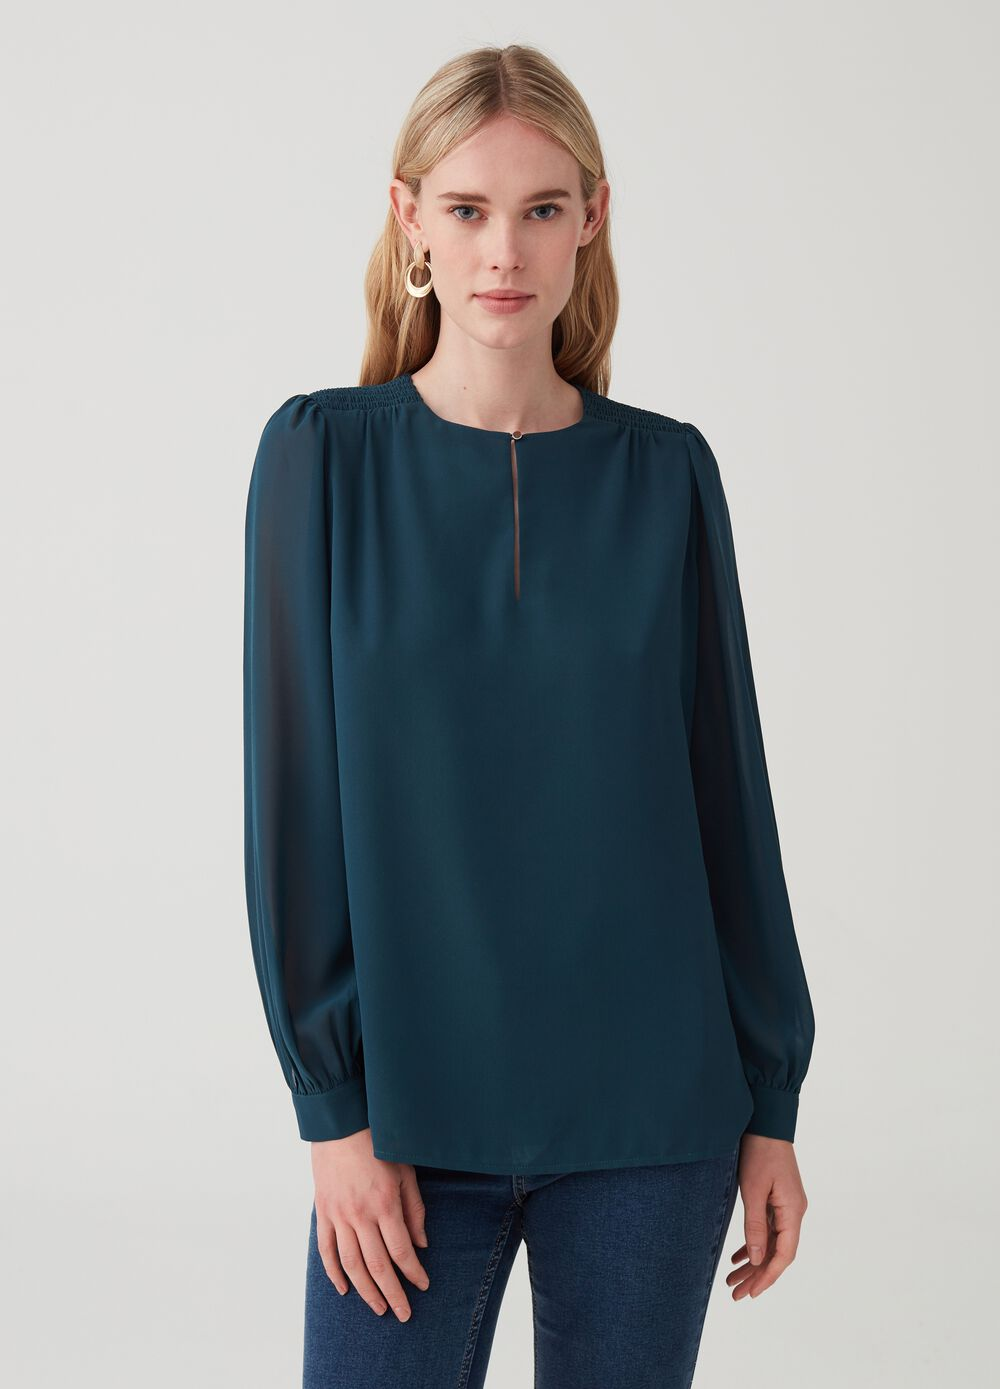 Blouse with wide sleeve and gathering